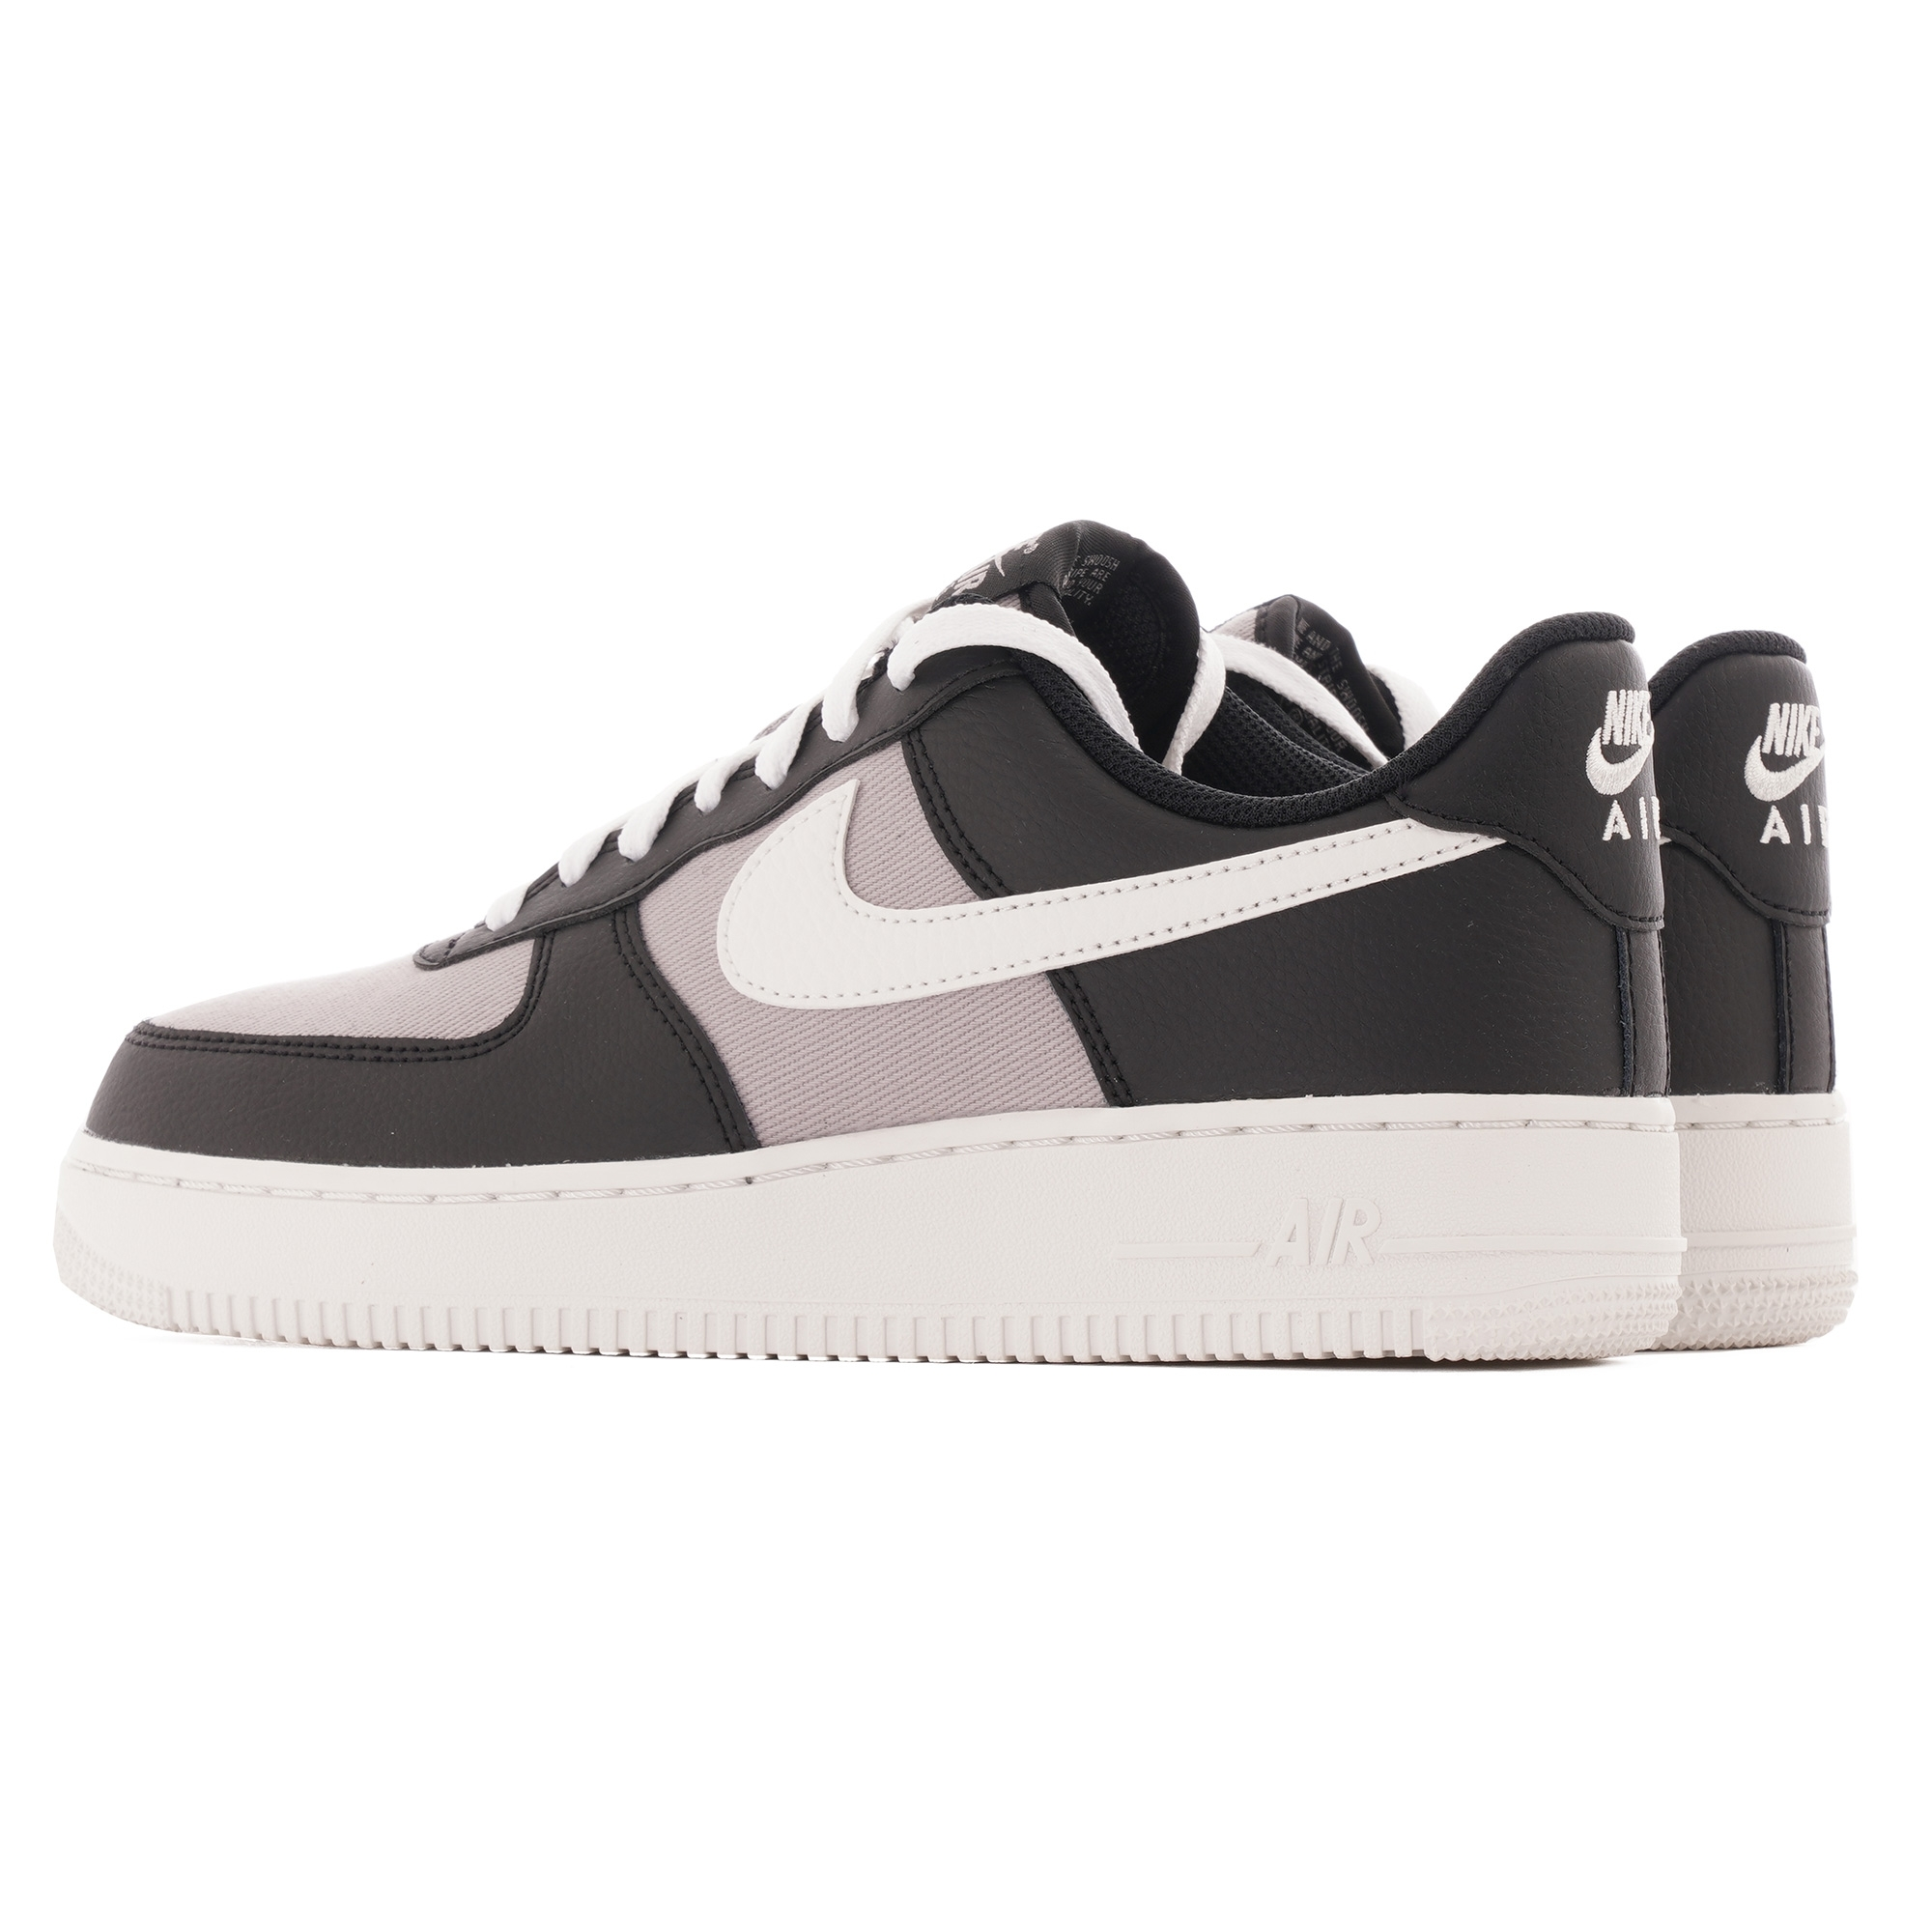 Nike Air Force 1 '07 BlackWhite